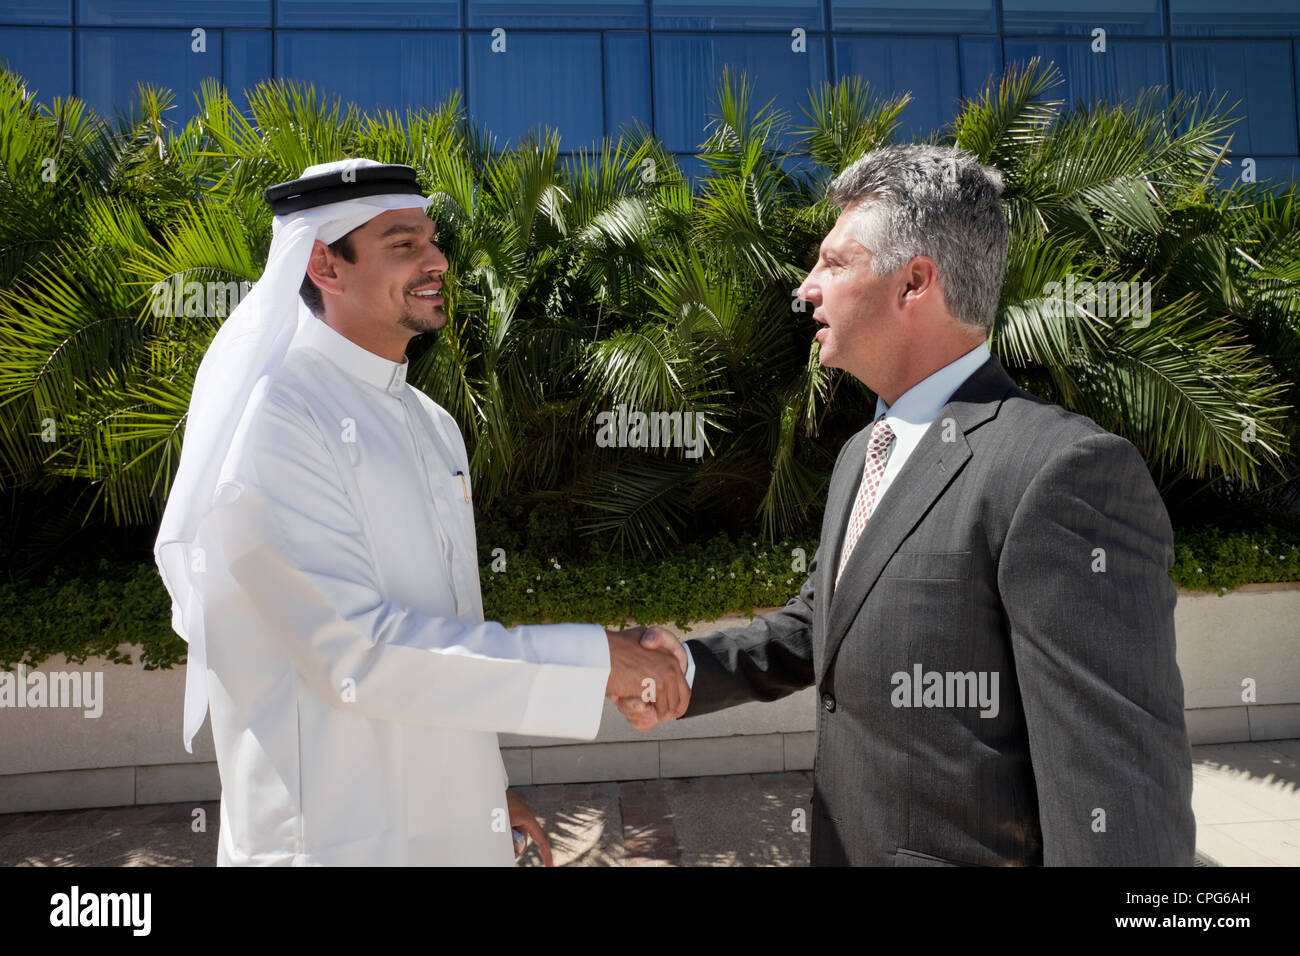 Homme d'arabe et de l'ouest businessman shaking hands in front of office building. Photo Stock